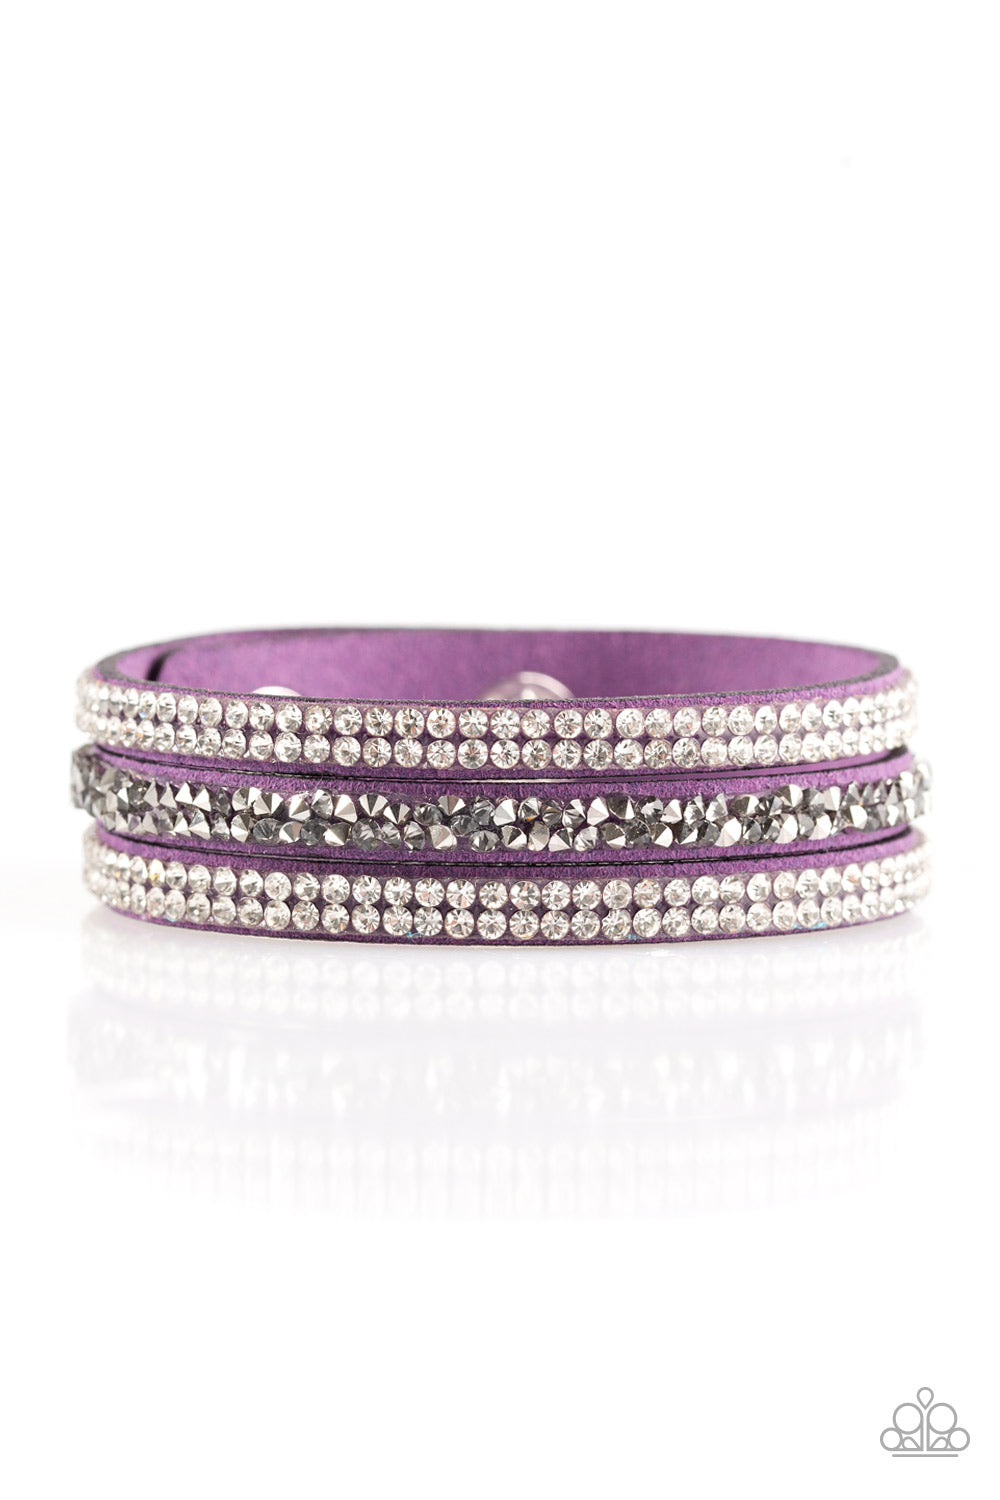 five-dollar-jewelry-mega-glam-purple-bracelet-paparazzi-accessories